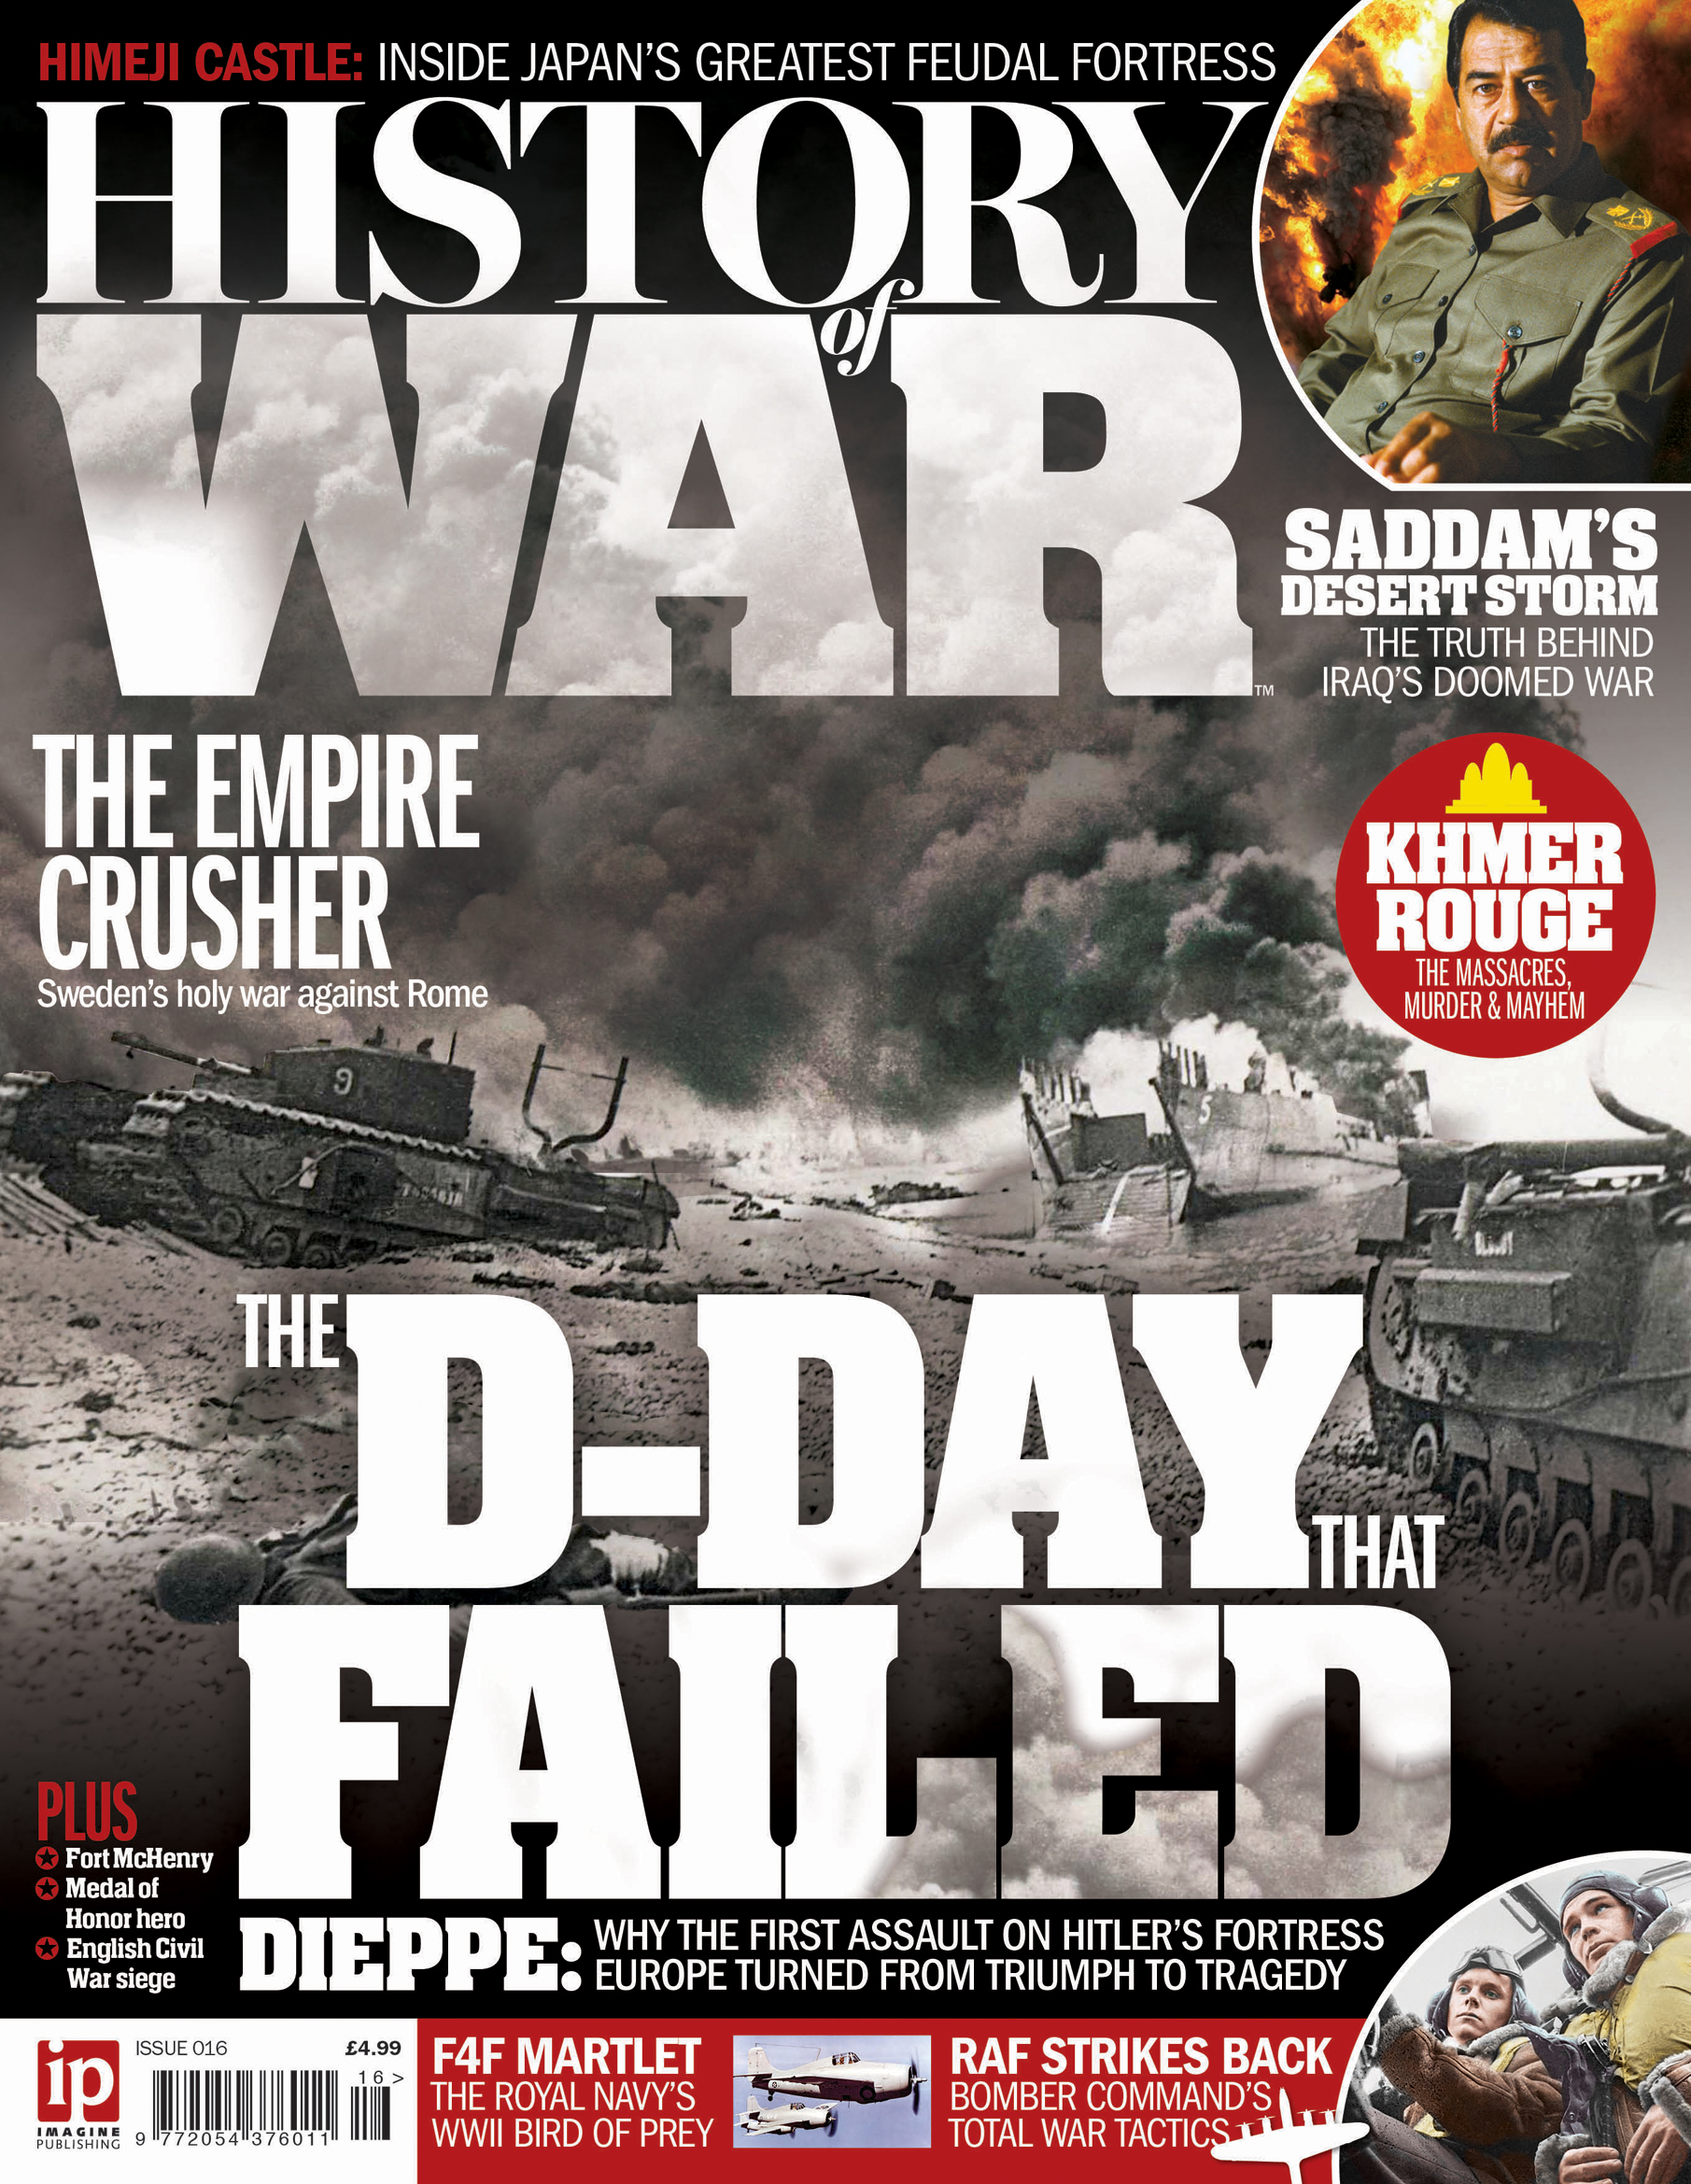 History of War Issue 16 preview